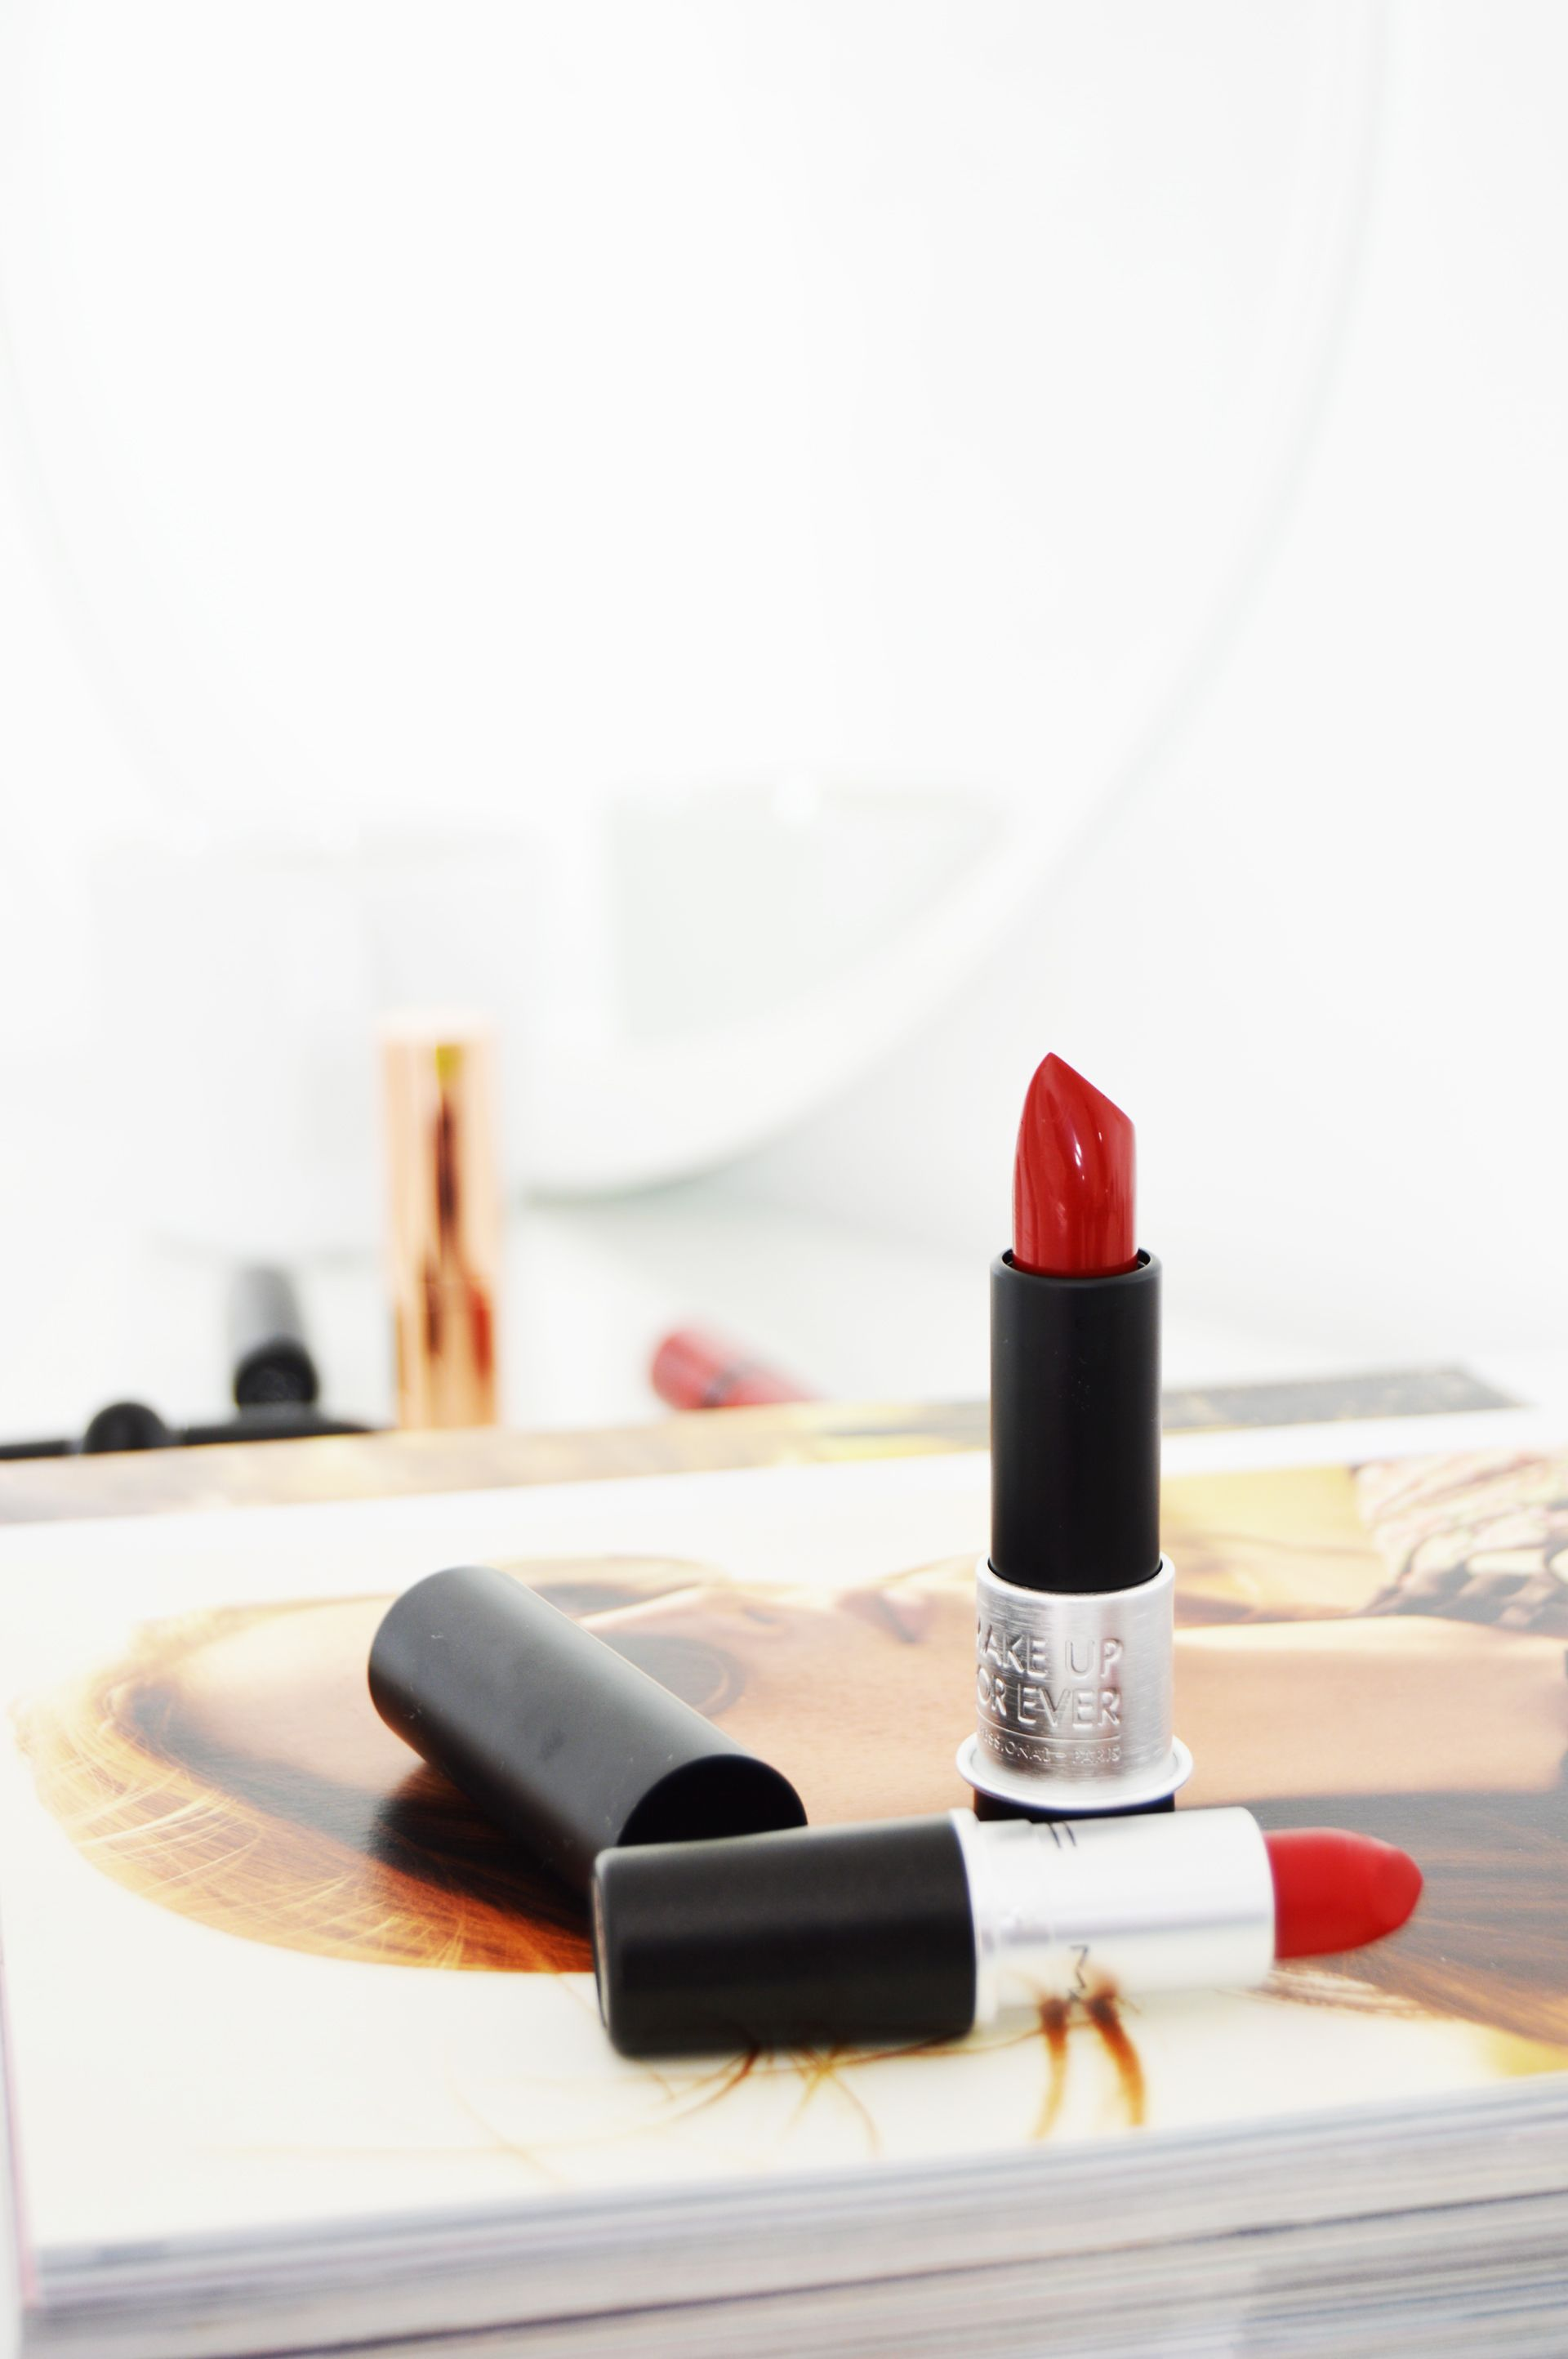 Make Up For Ever Artist Rouge Lipstick M402 is a matte brick red colour with warm brown undertones. Even though it is matte, it has creamy formula and doesn't feel uncomfortable. It would suit every complexion.